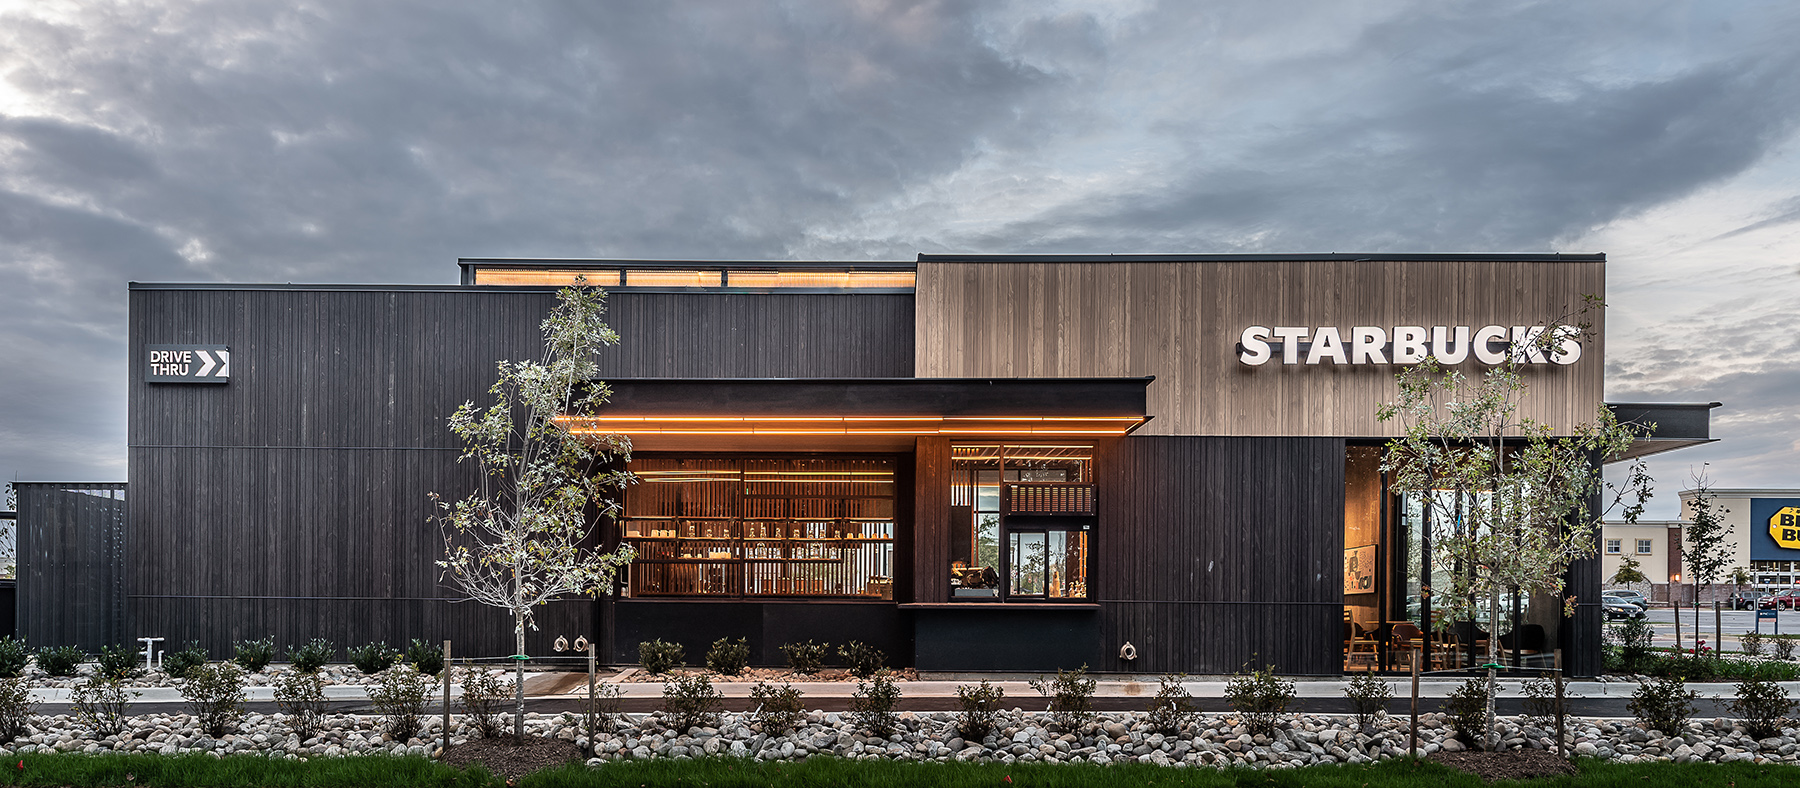 Hanley Investment Group Arranges Pre-Sale of New Construction Starbucks Drive-Thru in Rancho Cordova, Calif., for $2.6 Million